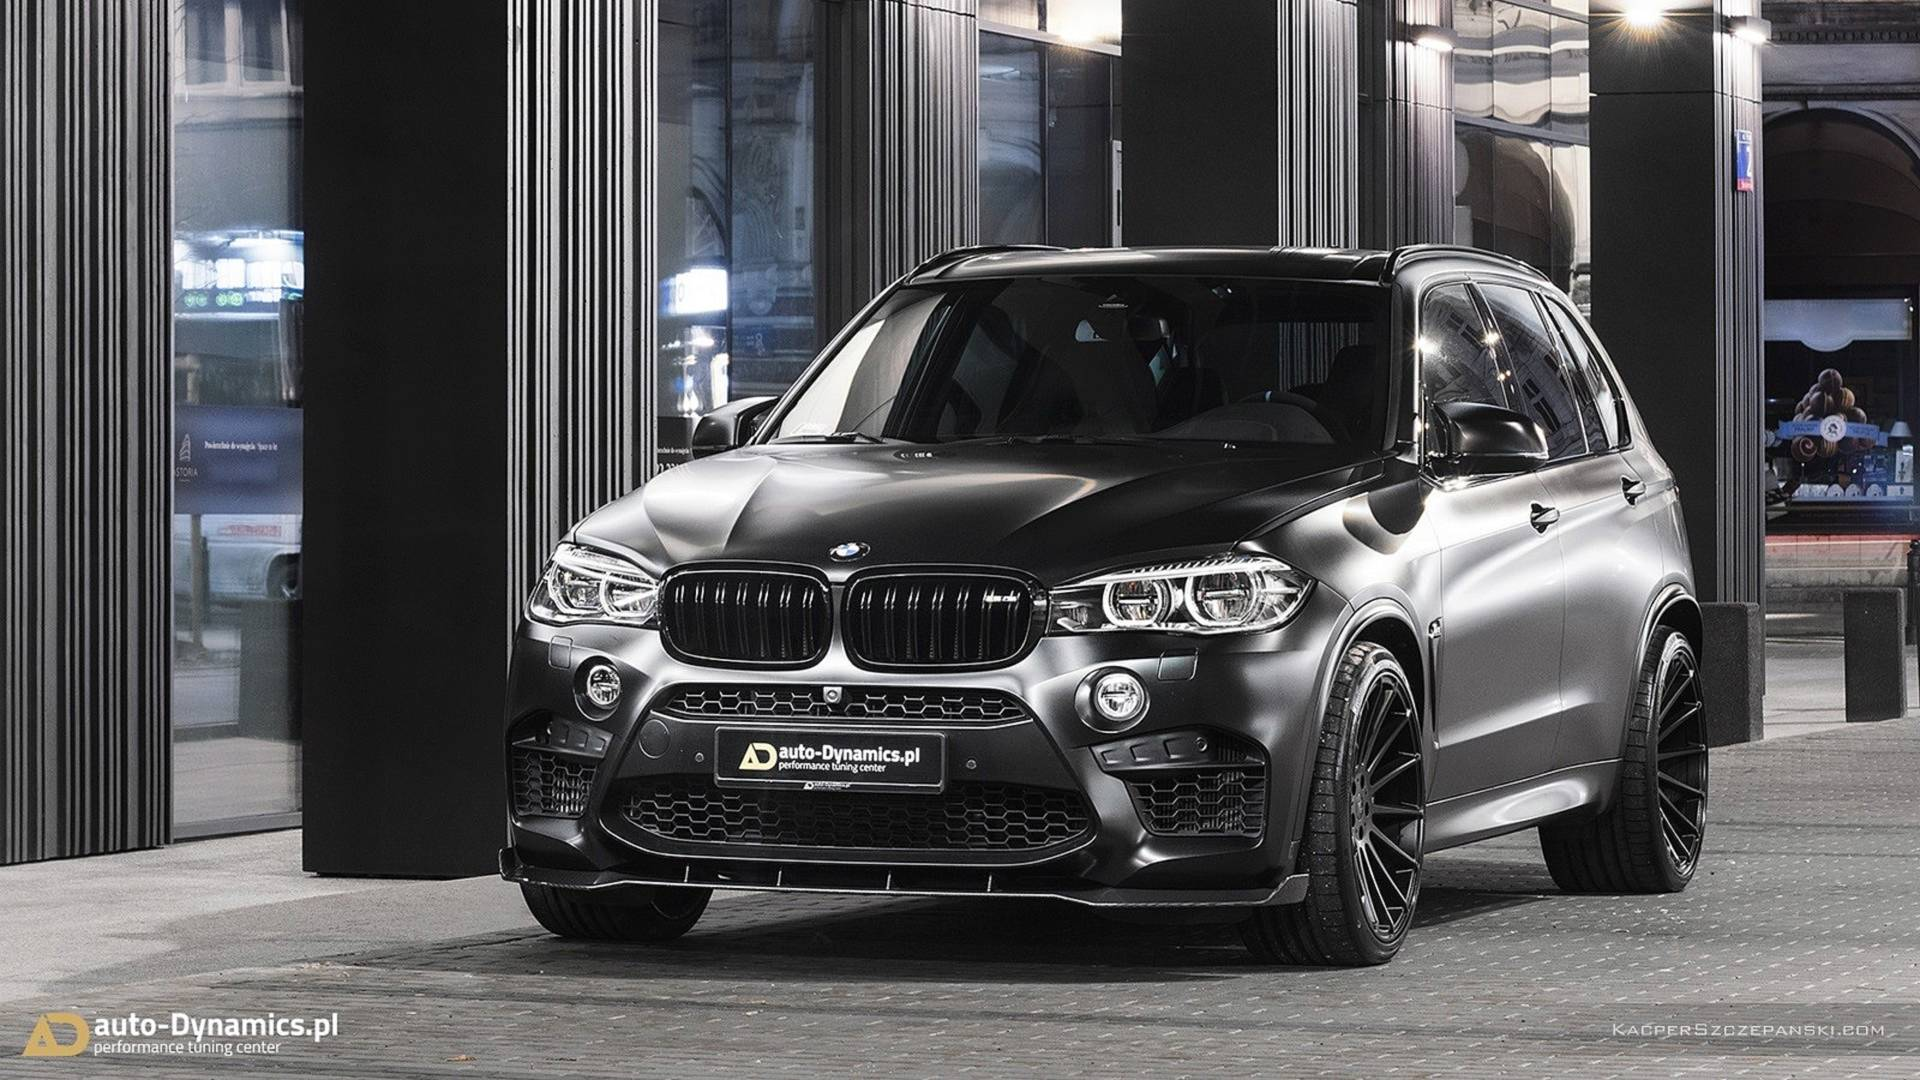 Bmw X5 M Avalanche Is A Mobbed Up Suv With 670 Horsepower